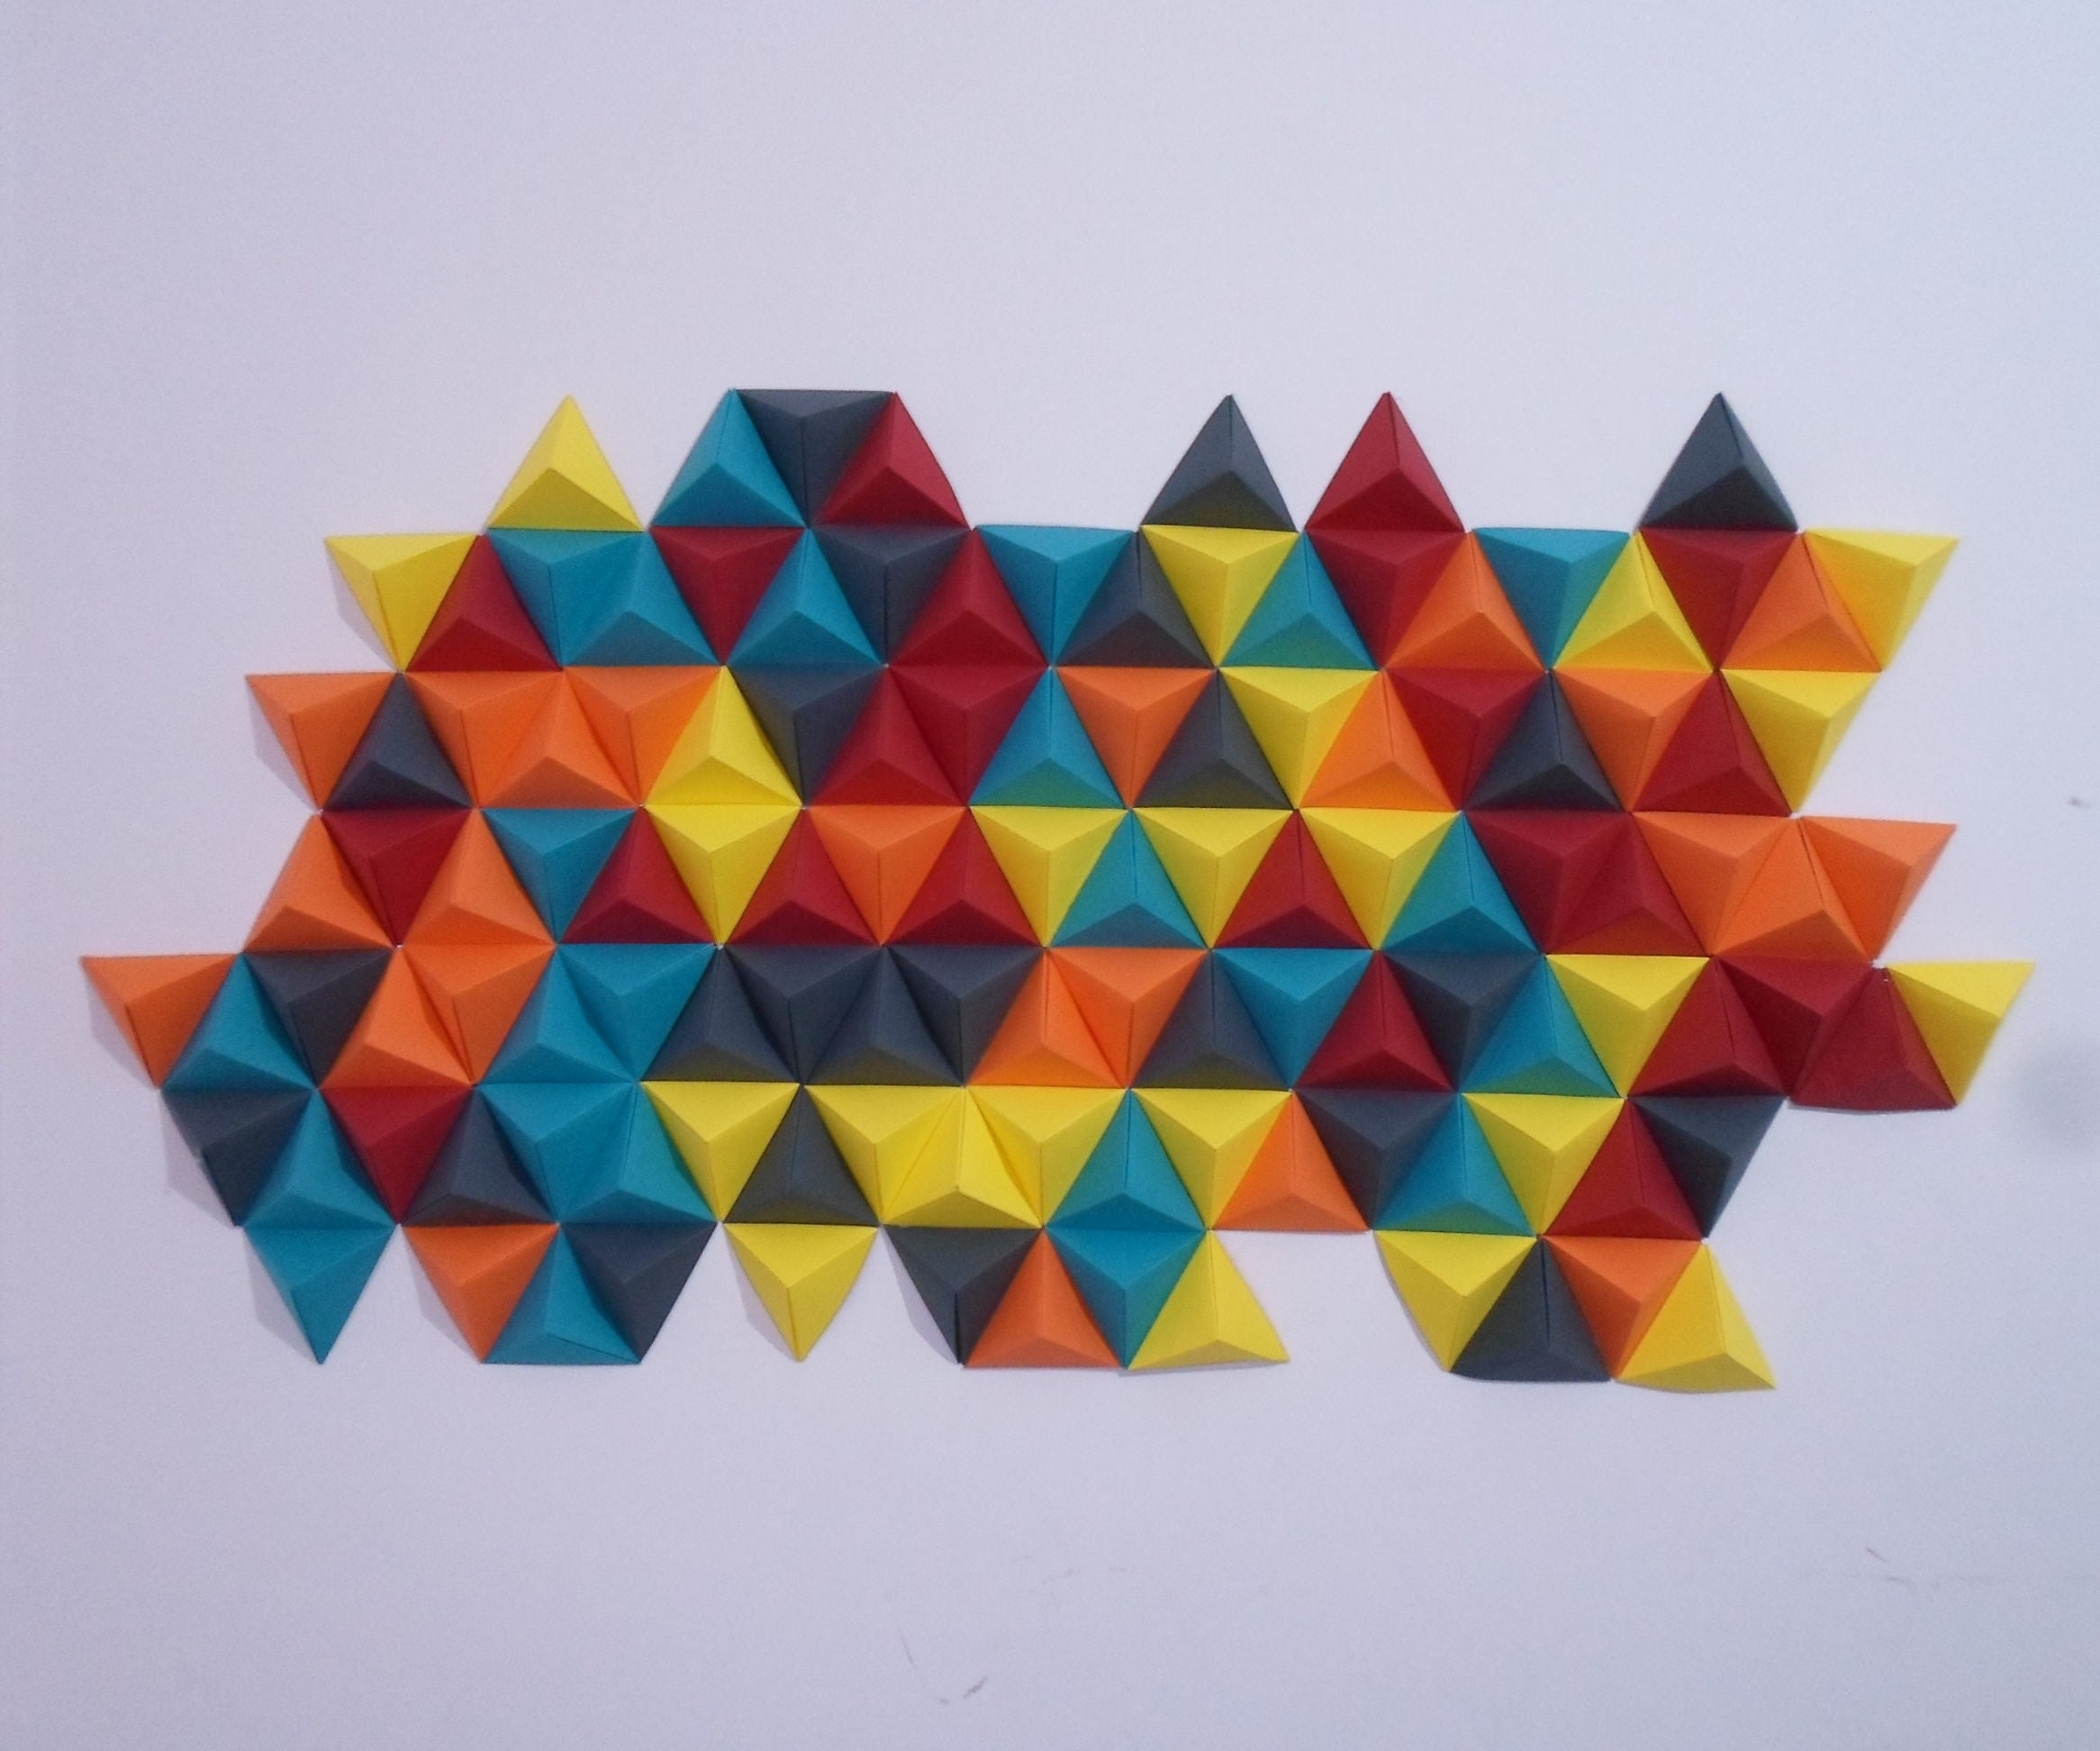 3D Origami Wall Art | Triangle Pixel Art : 6 Steps - Instructables | 1944x2332